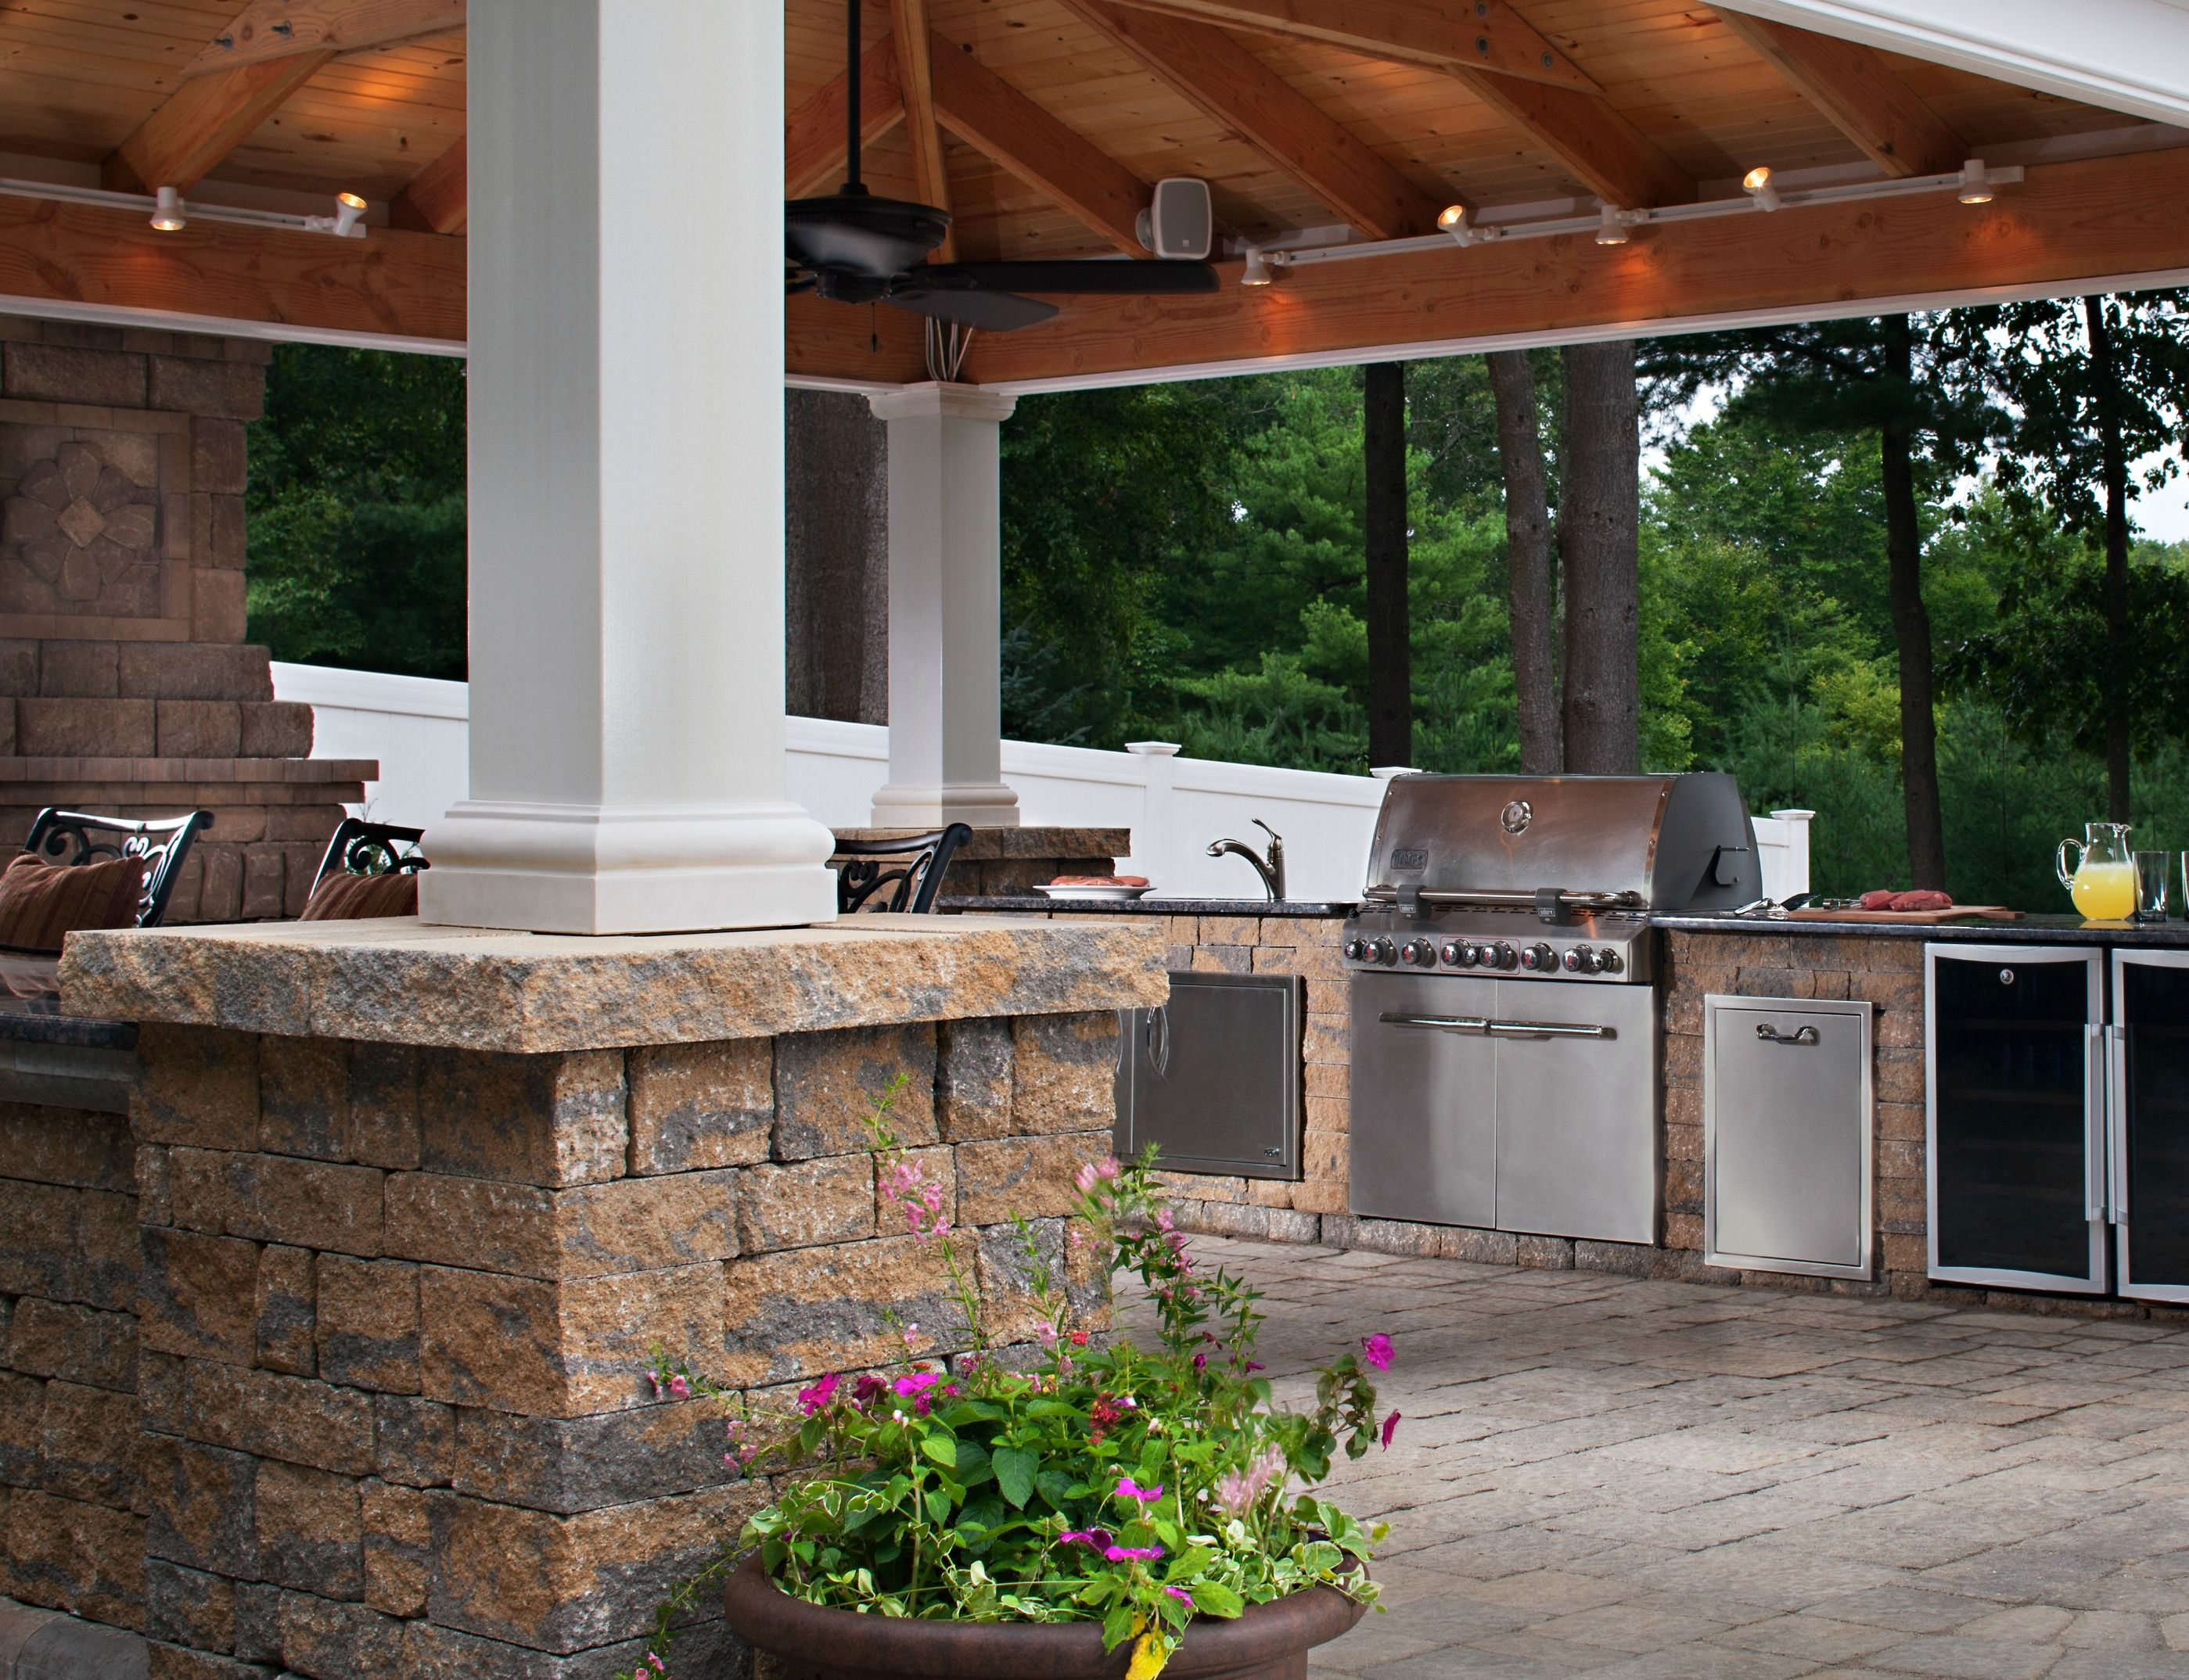 9 Hot Outdoor Kitchen Trends That Make Backyard Living Easy Extraordinary Outdoor Kitchens And Patios Designs Design Decoration